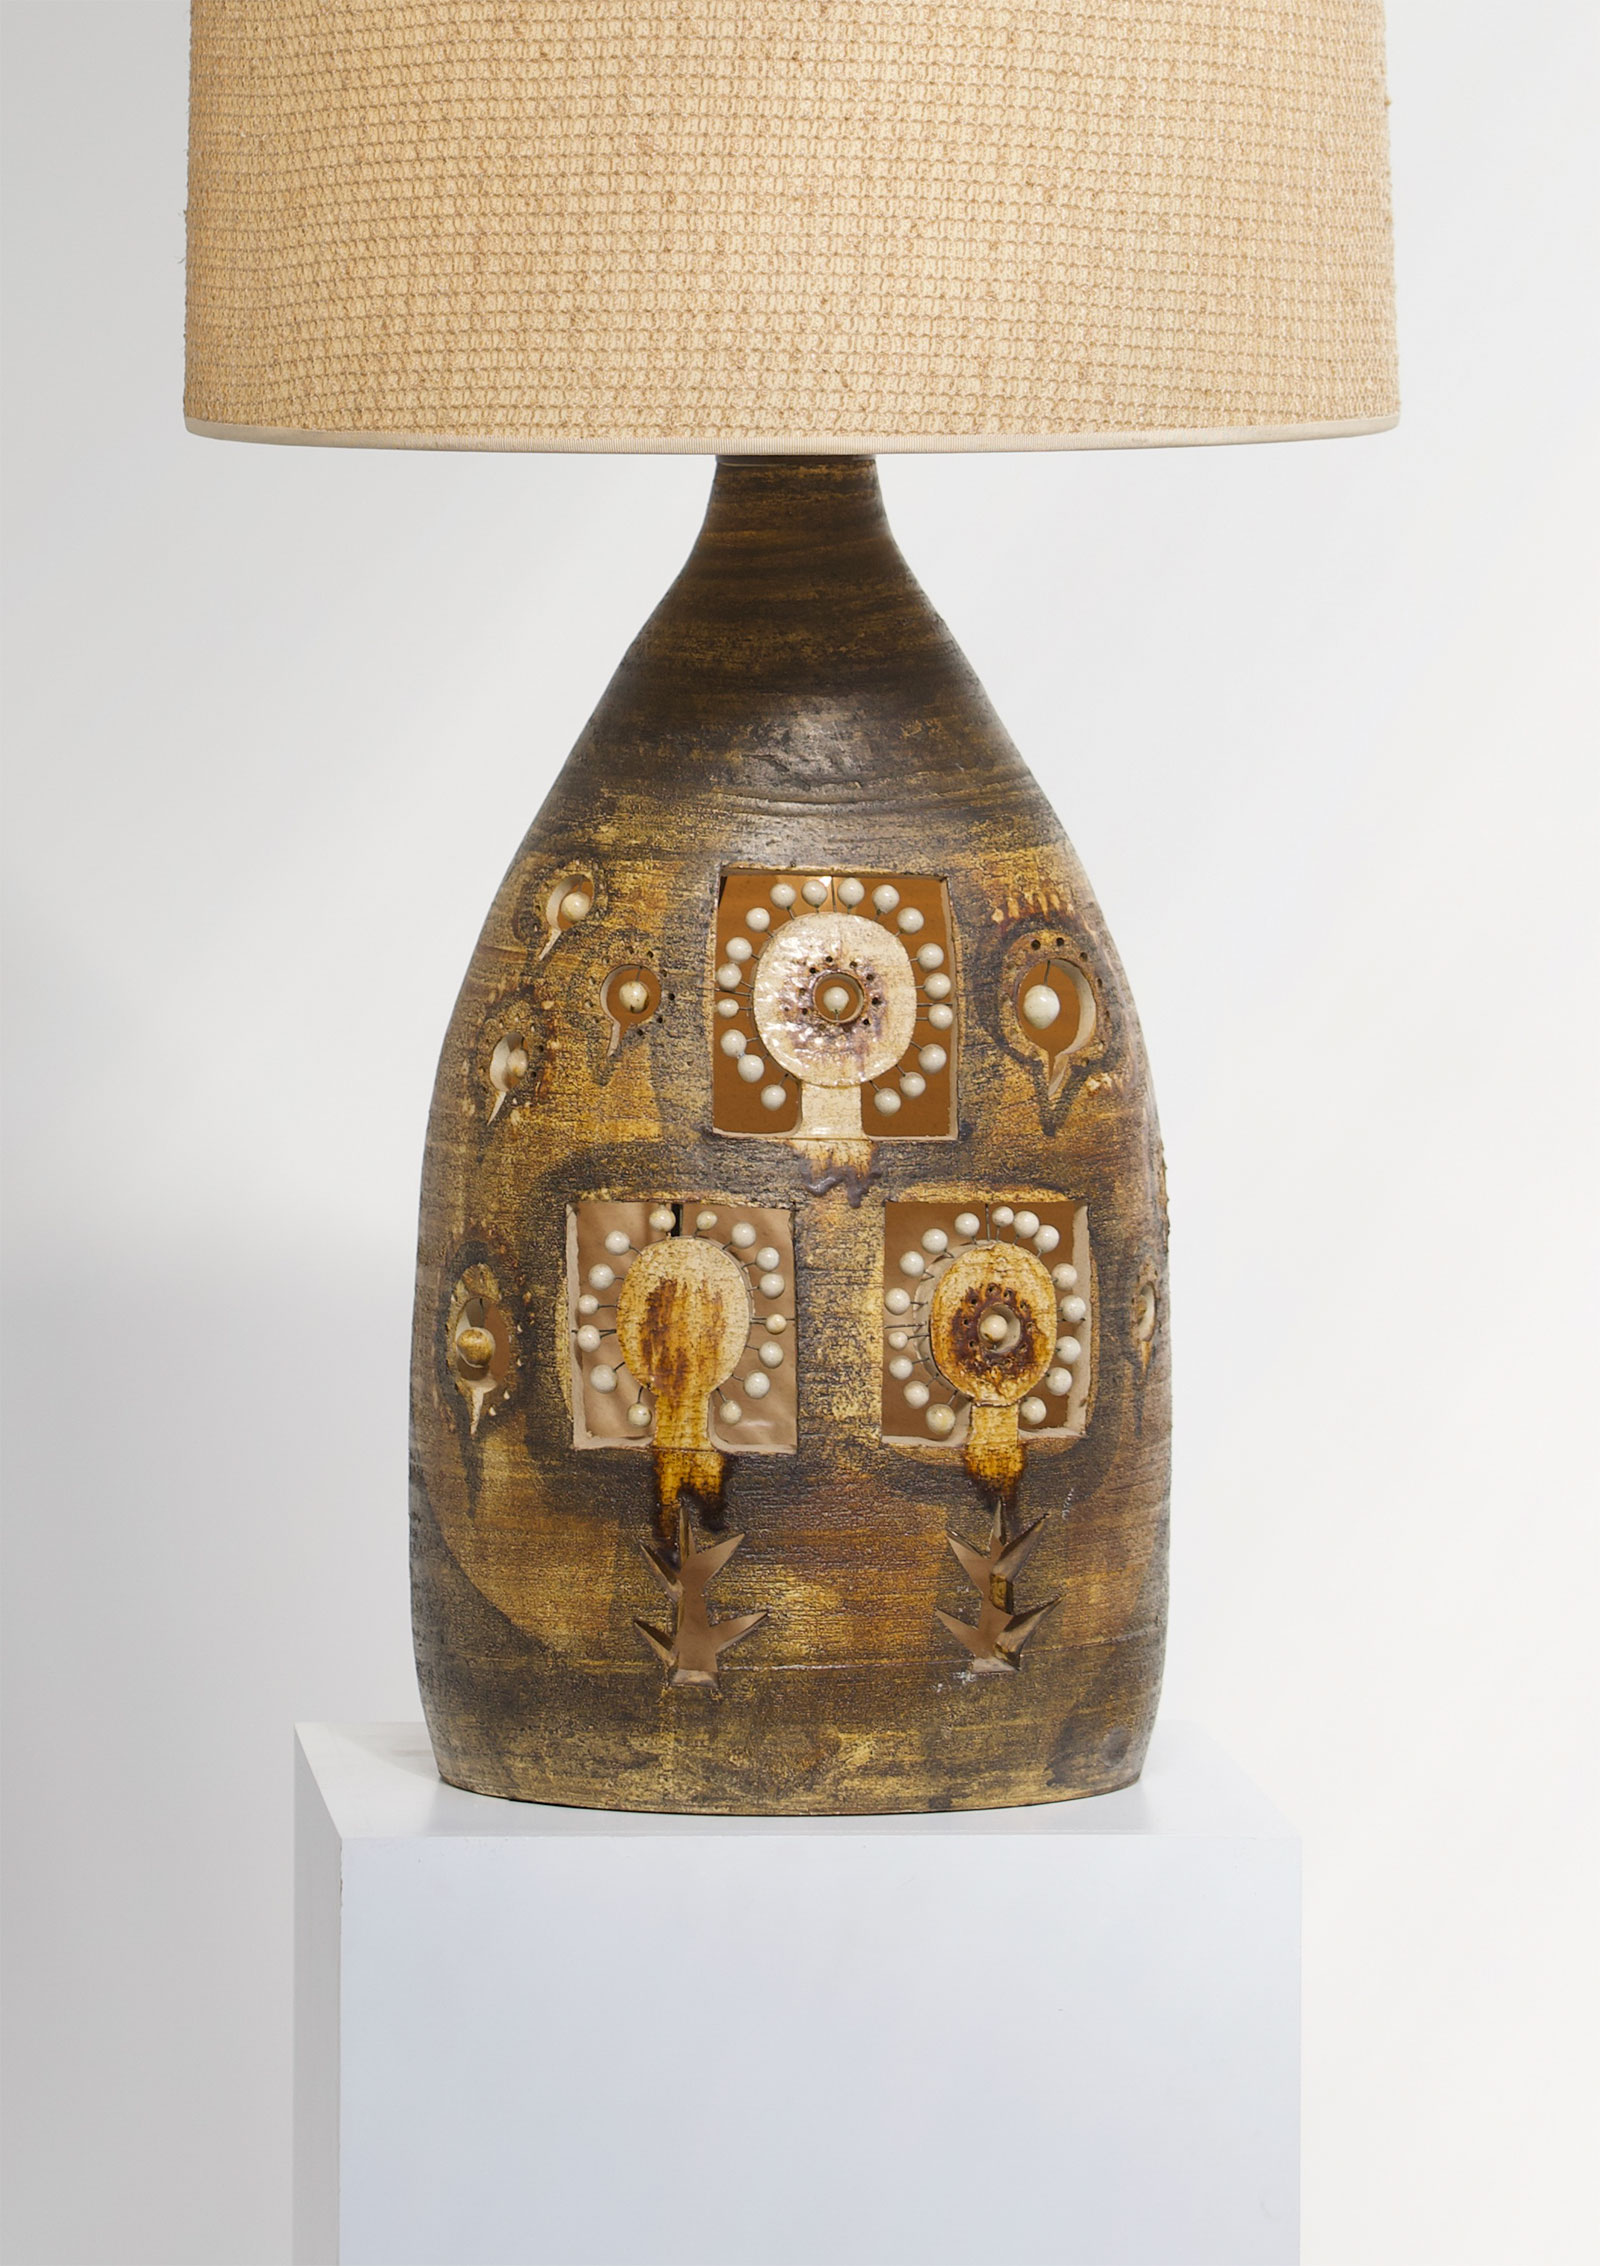 georges pelletier ceramic lamp